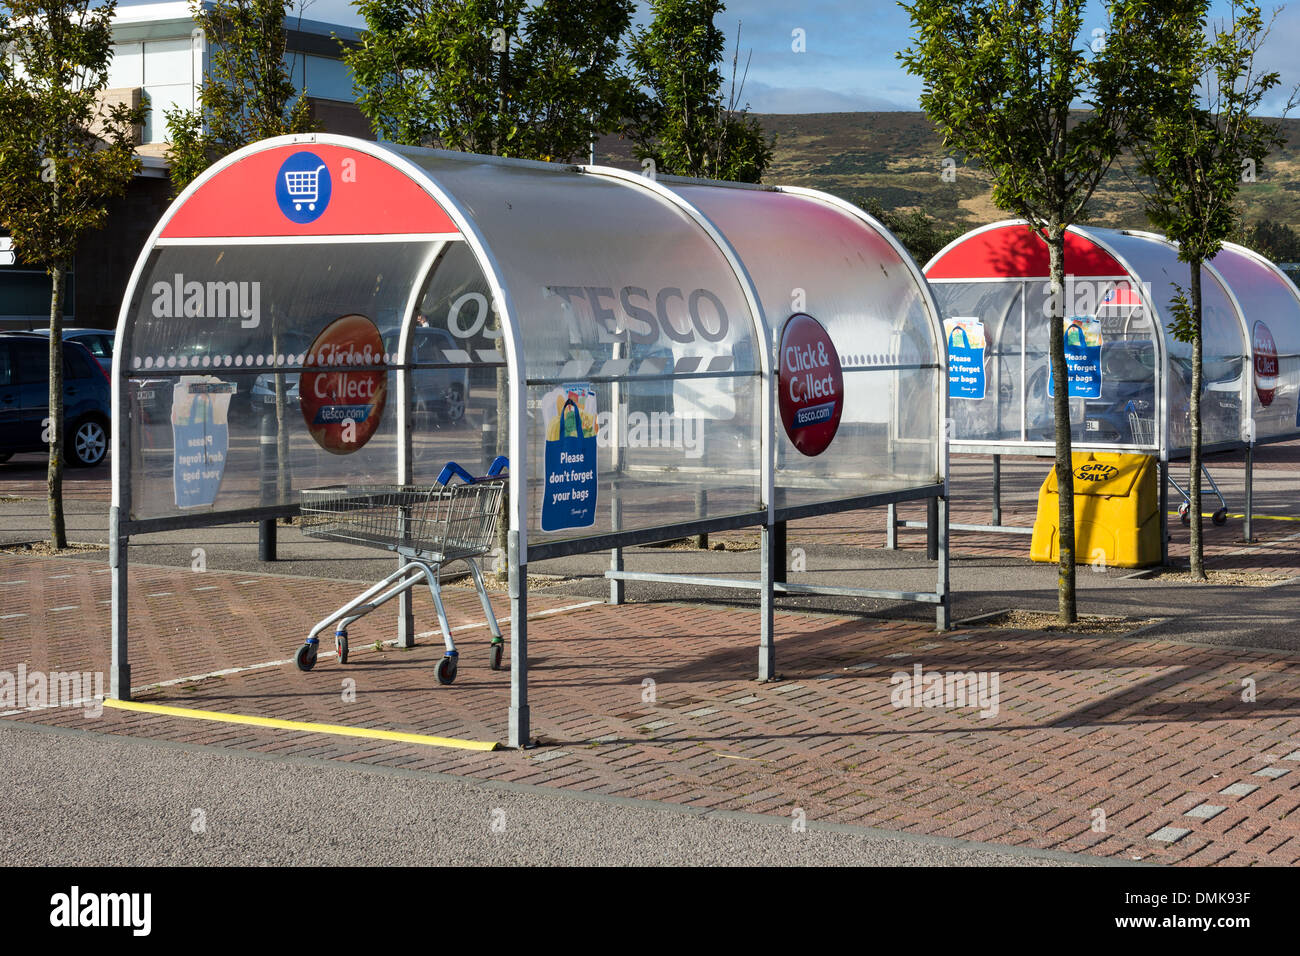 SUPERMARKET TROLLEY COLLECTION AREA AND STAND - Stock Image